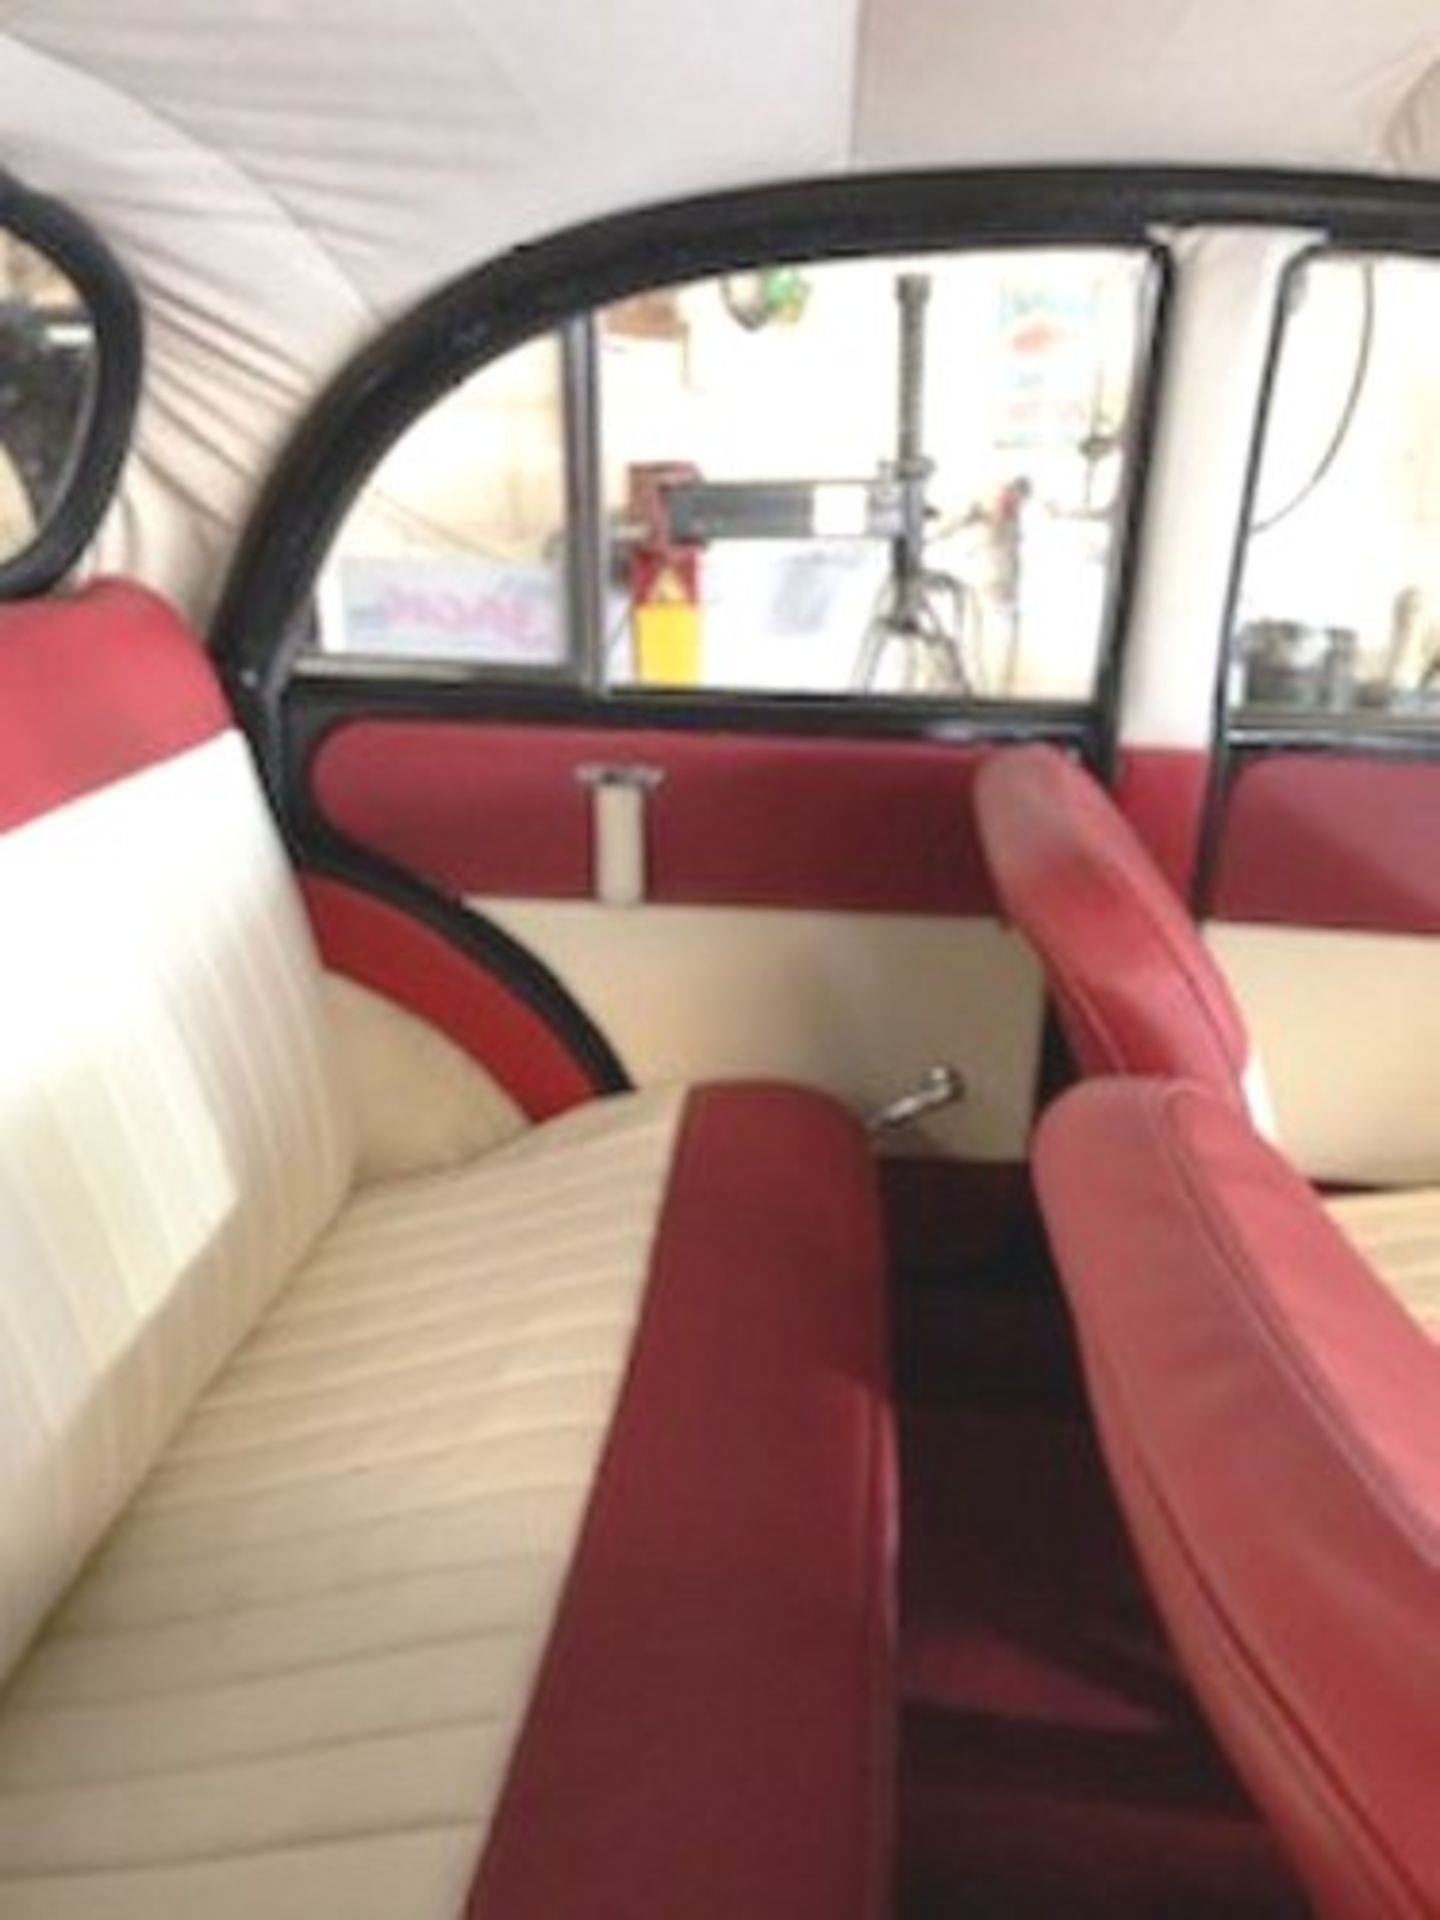 1964 Morris Minor 1000 in original black. The car has been restored with new flooring and vinyl - Image 7 of 16